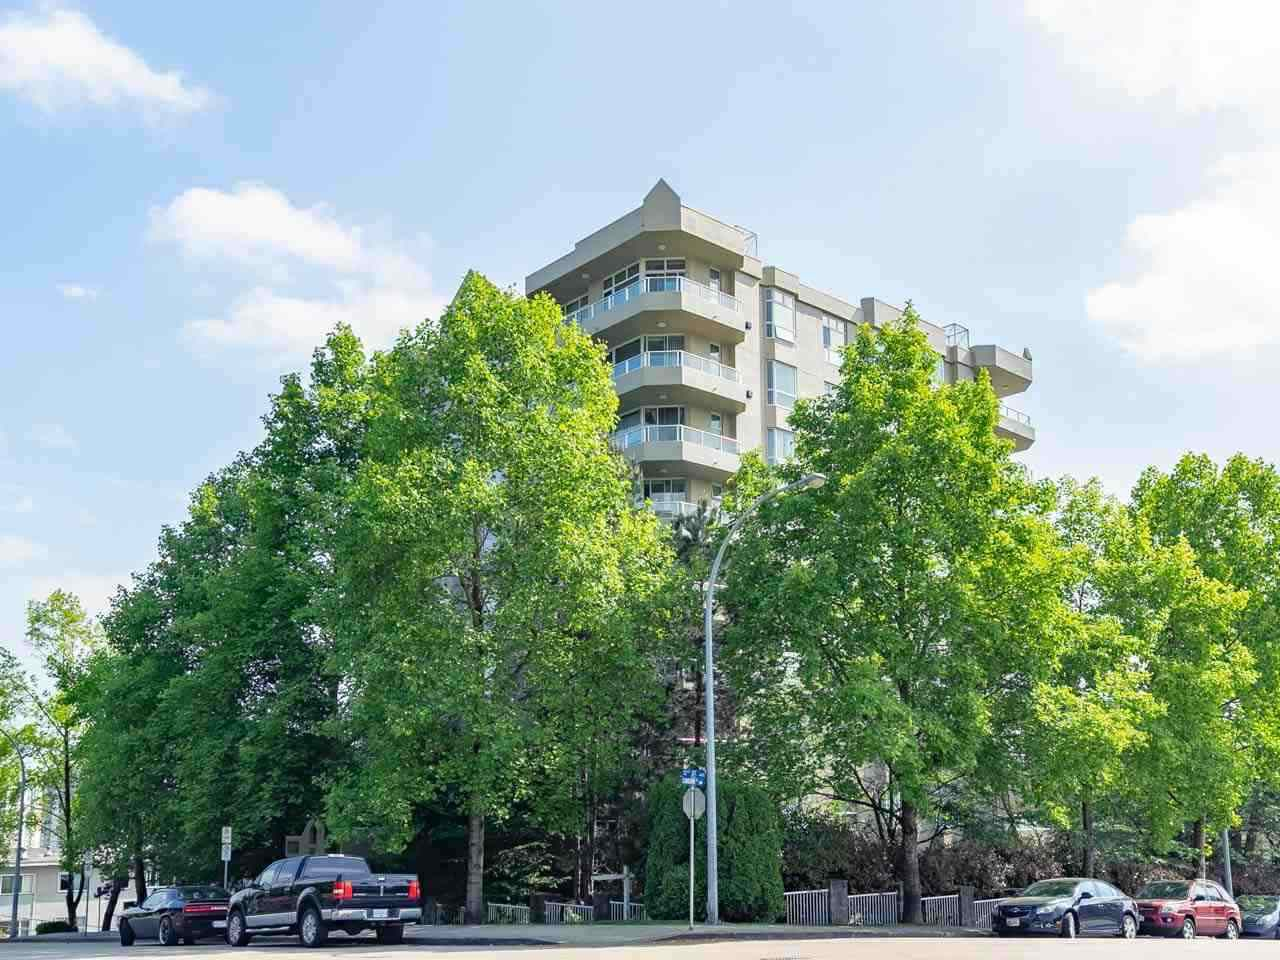 Main Photo: 302 412 TWELFTH STREET in New Westminster: Uptown NW Condo for sale : MLS®# R2325376